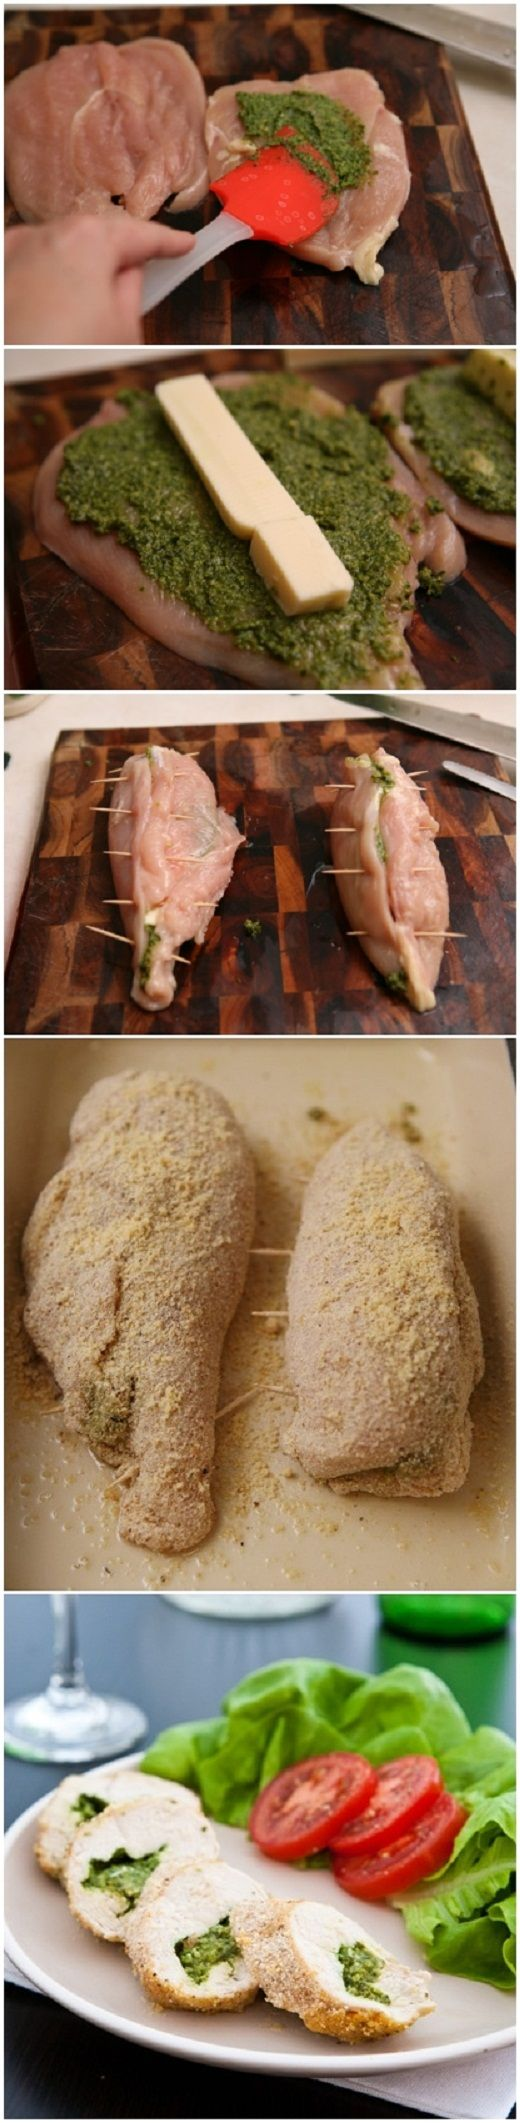 Mozzarella-Pesto Stuffed Chicken Breasts (Use GF bread crumbs. I like Udi's)